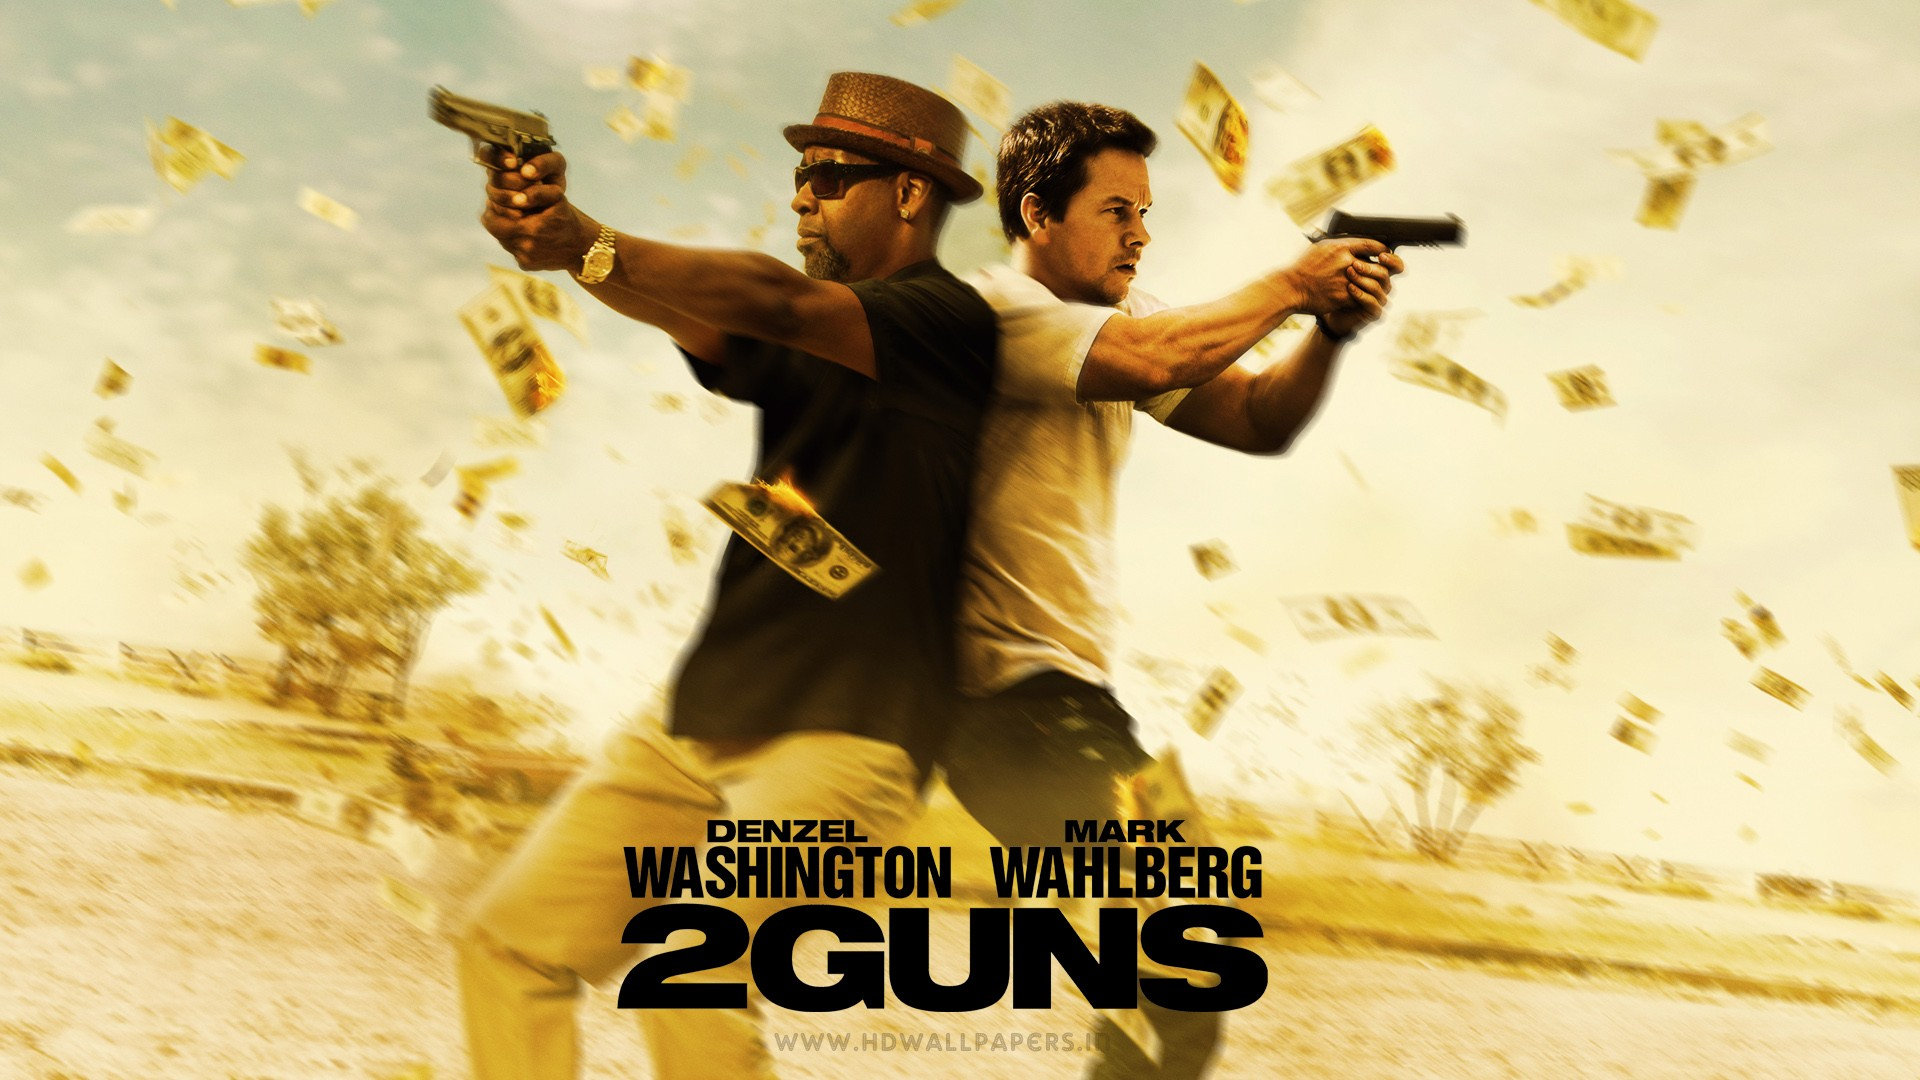 Cute Live Wallpaper Download 2 Guns Movie Wallpapers Hd Wallpapers Id 12291